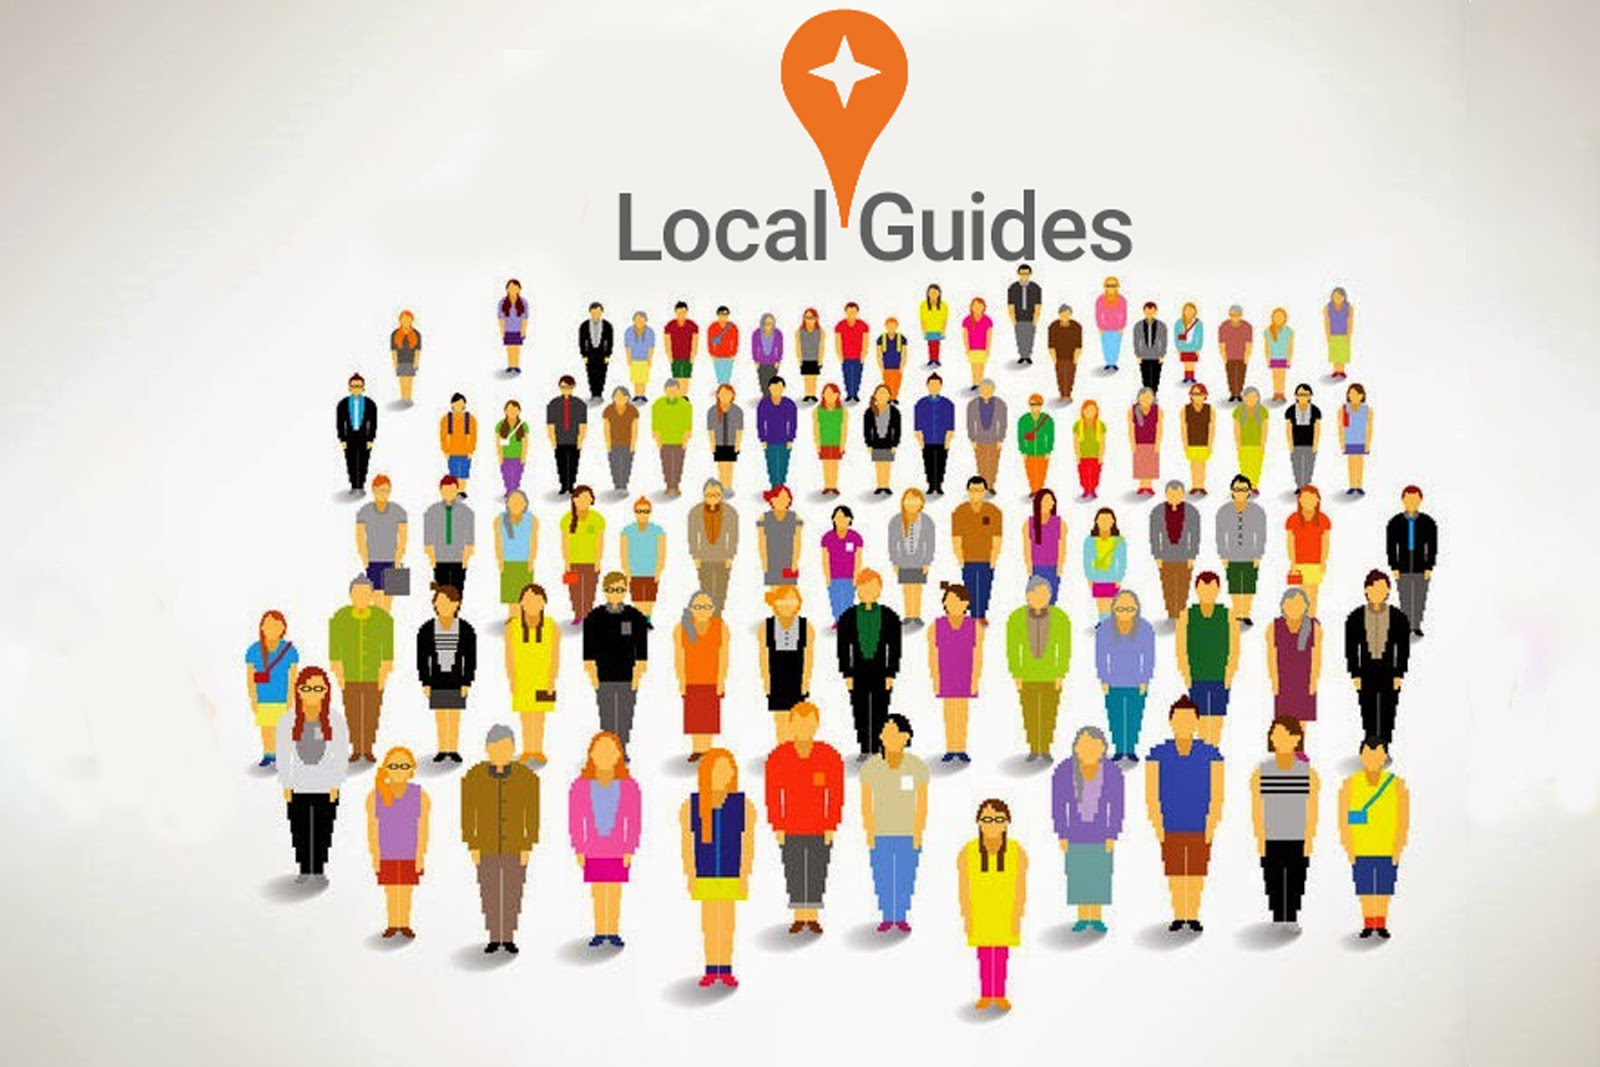 Comunidad Google Local Guides